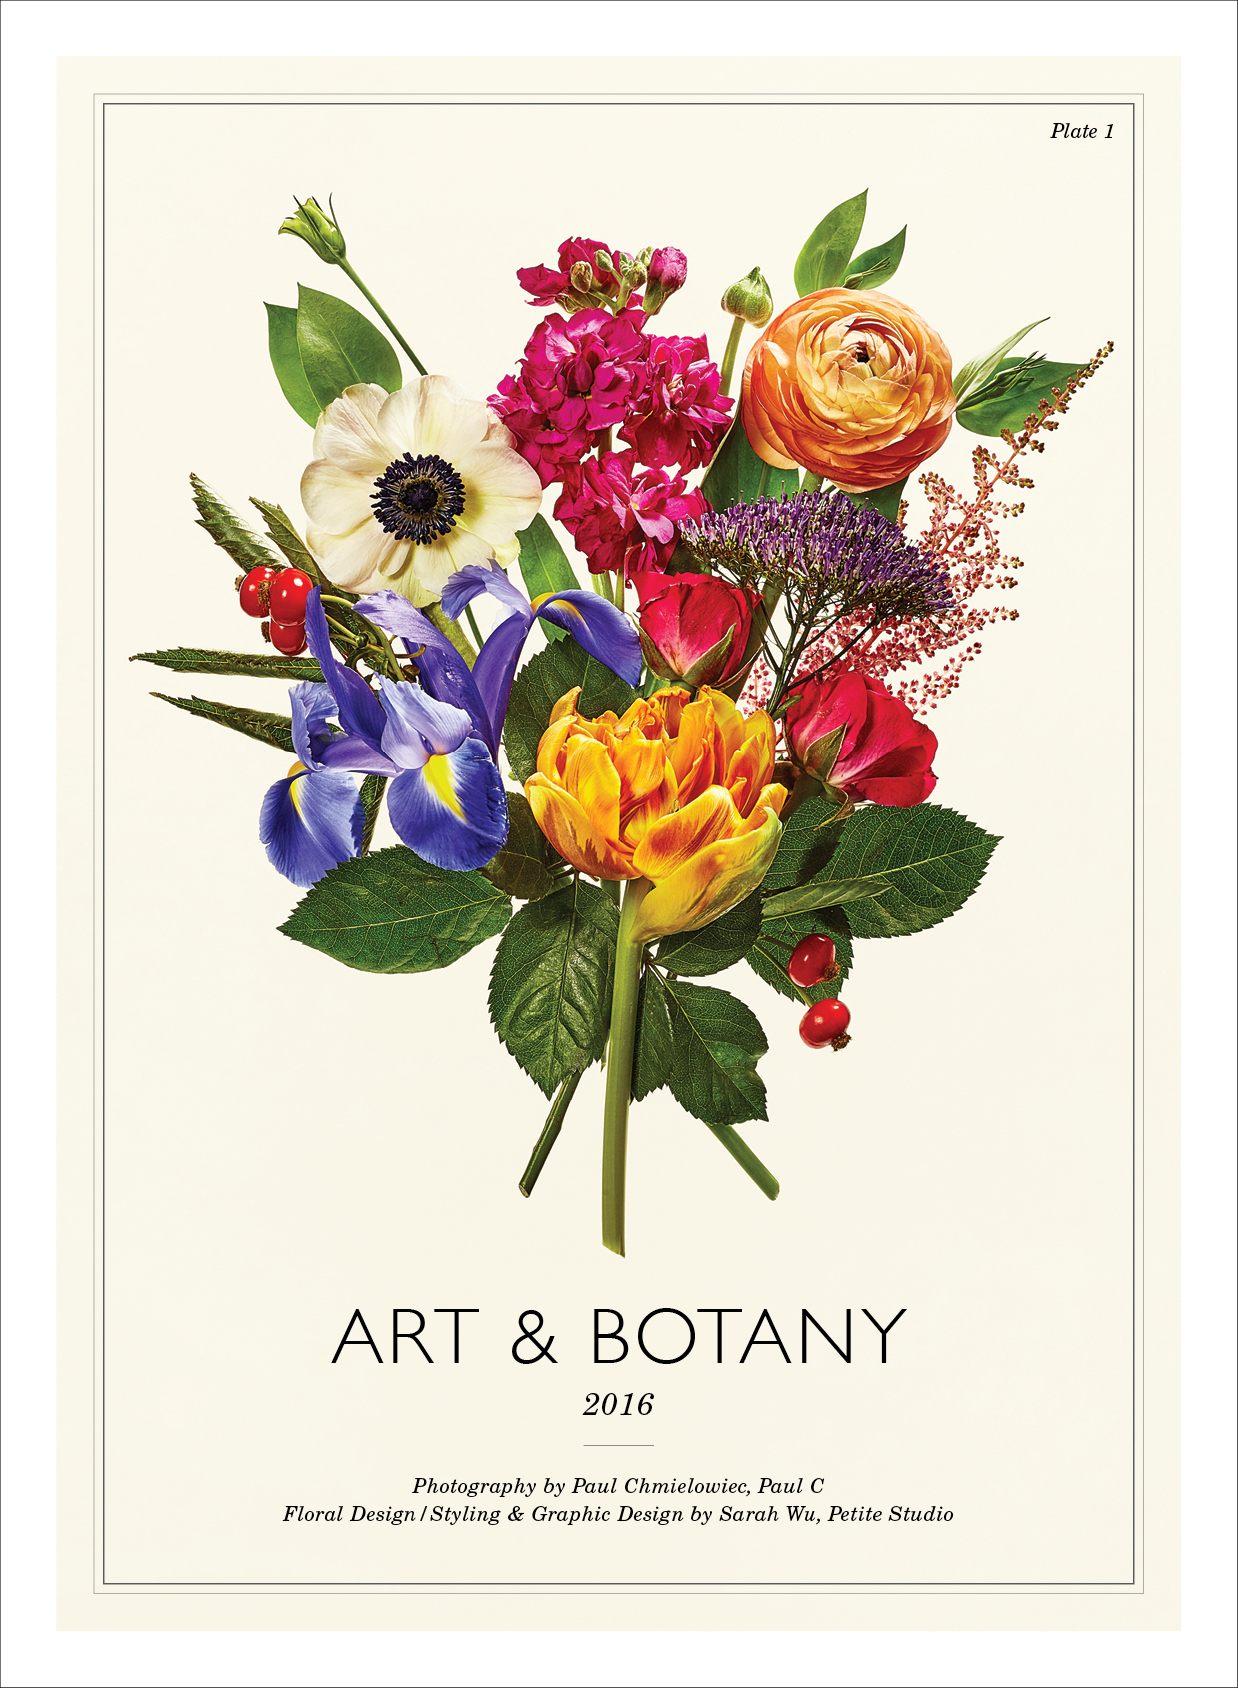 Art & Botany.  Calendar design collaboration with Paul C, 2016